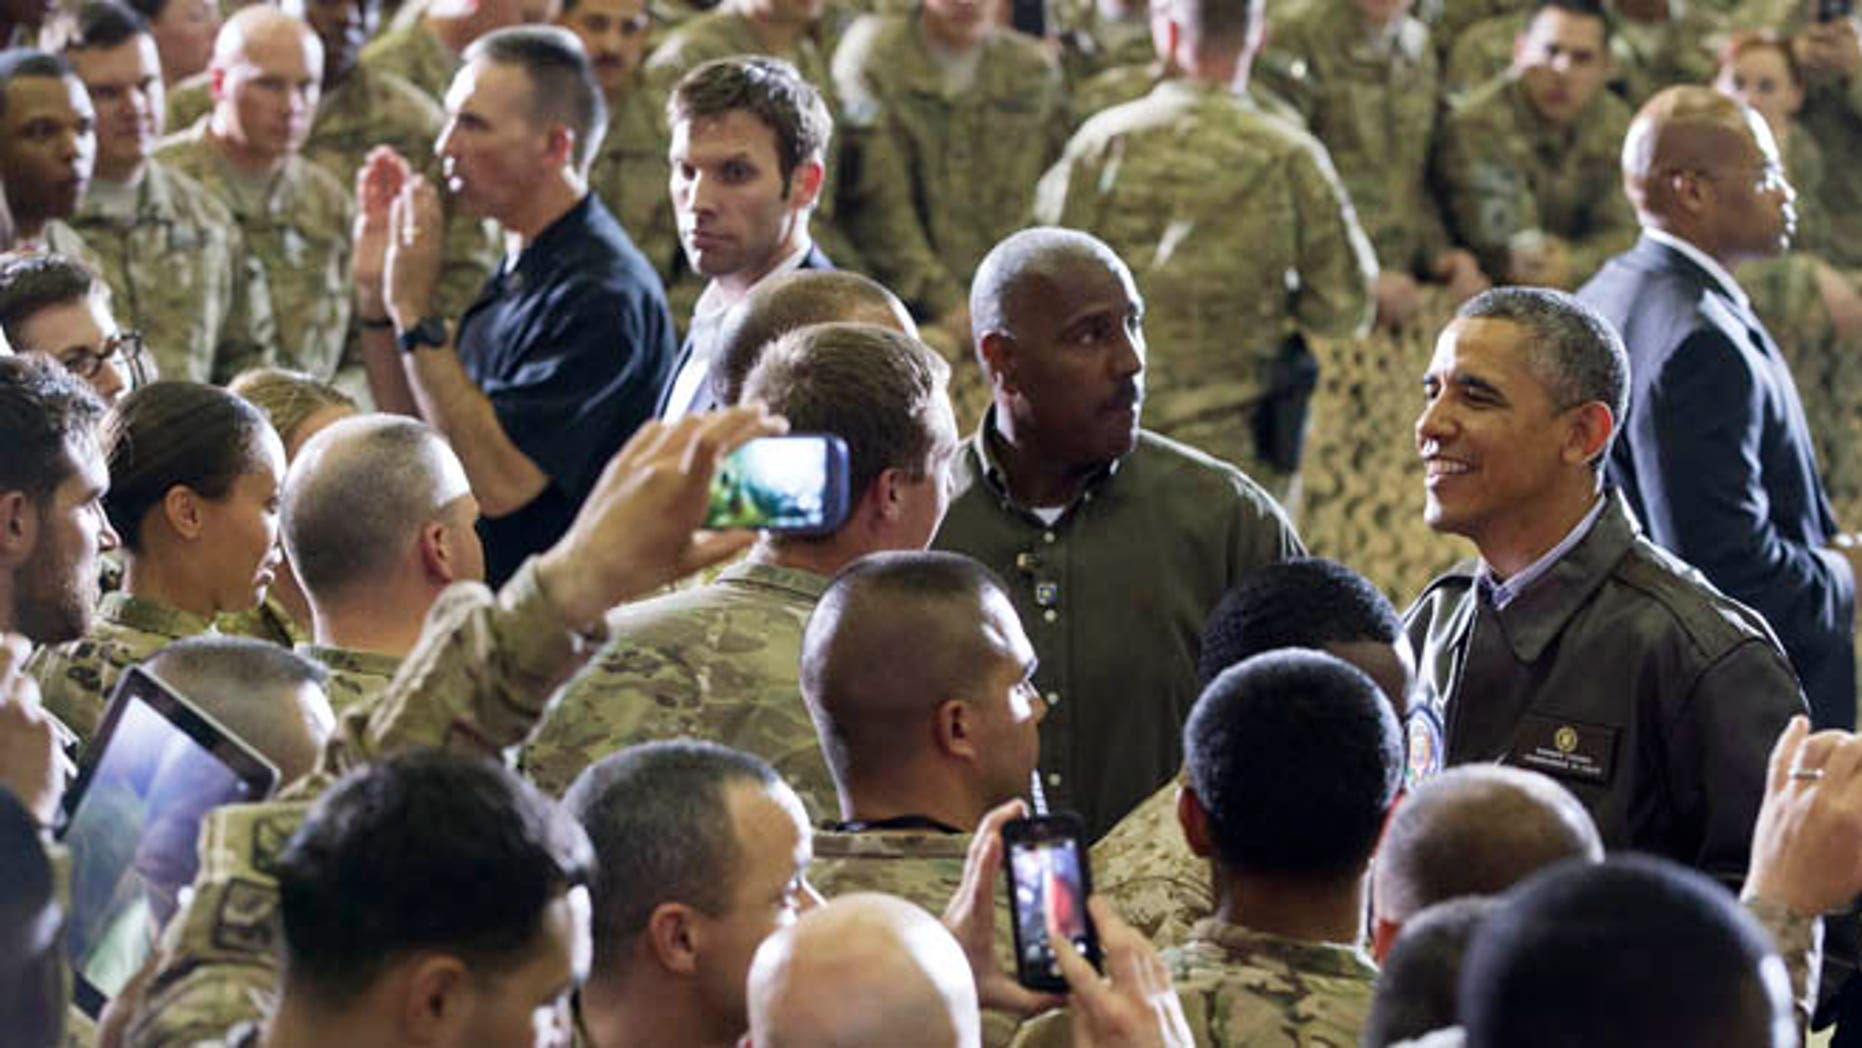 May 25, 2014: President Obama greets troops at Bagram Airfield, north of Kabul, Afghanistan, during an unannounced visit.